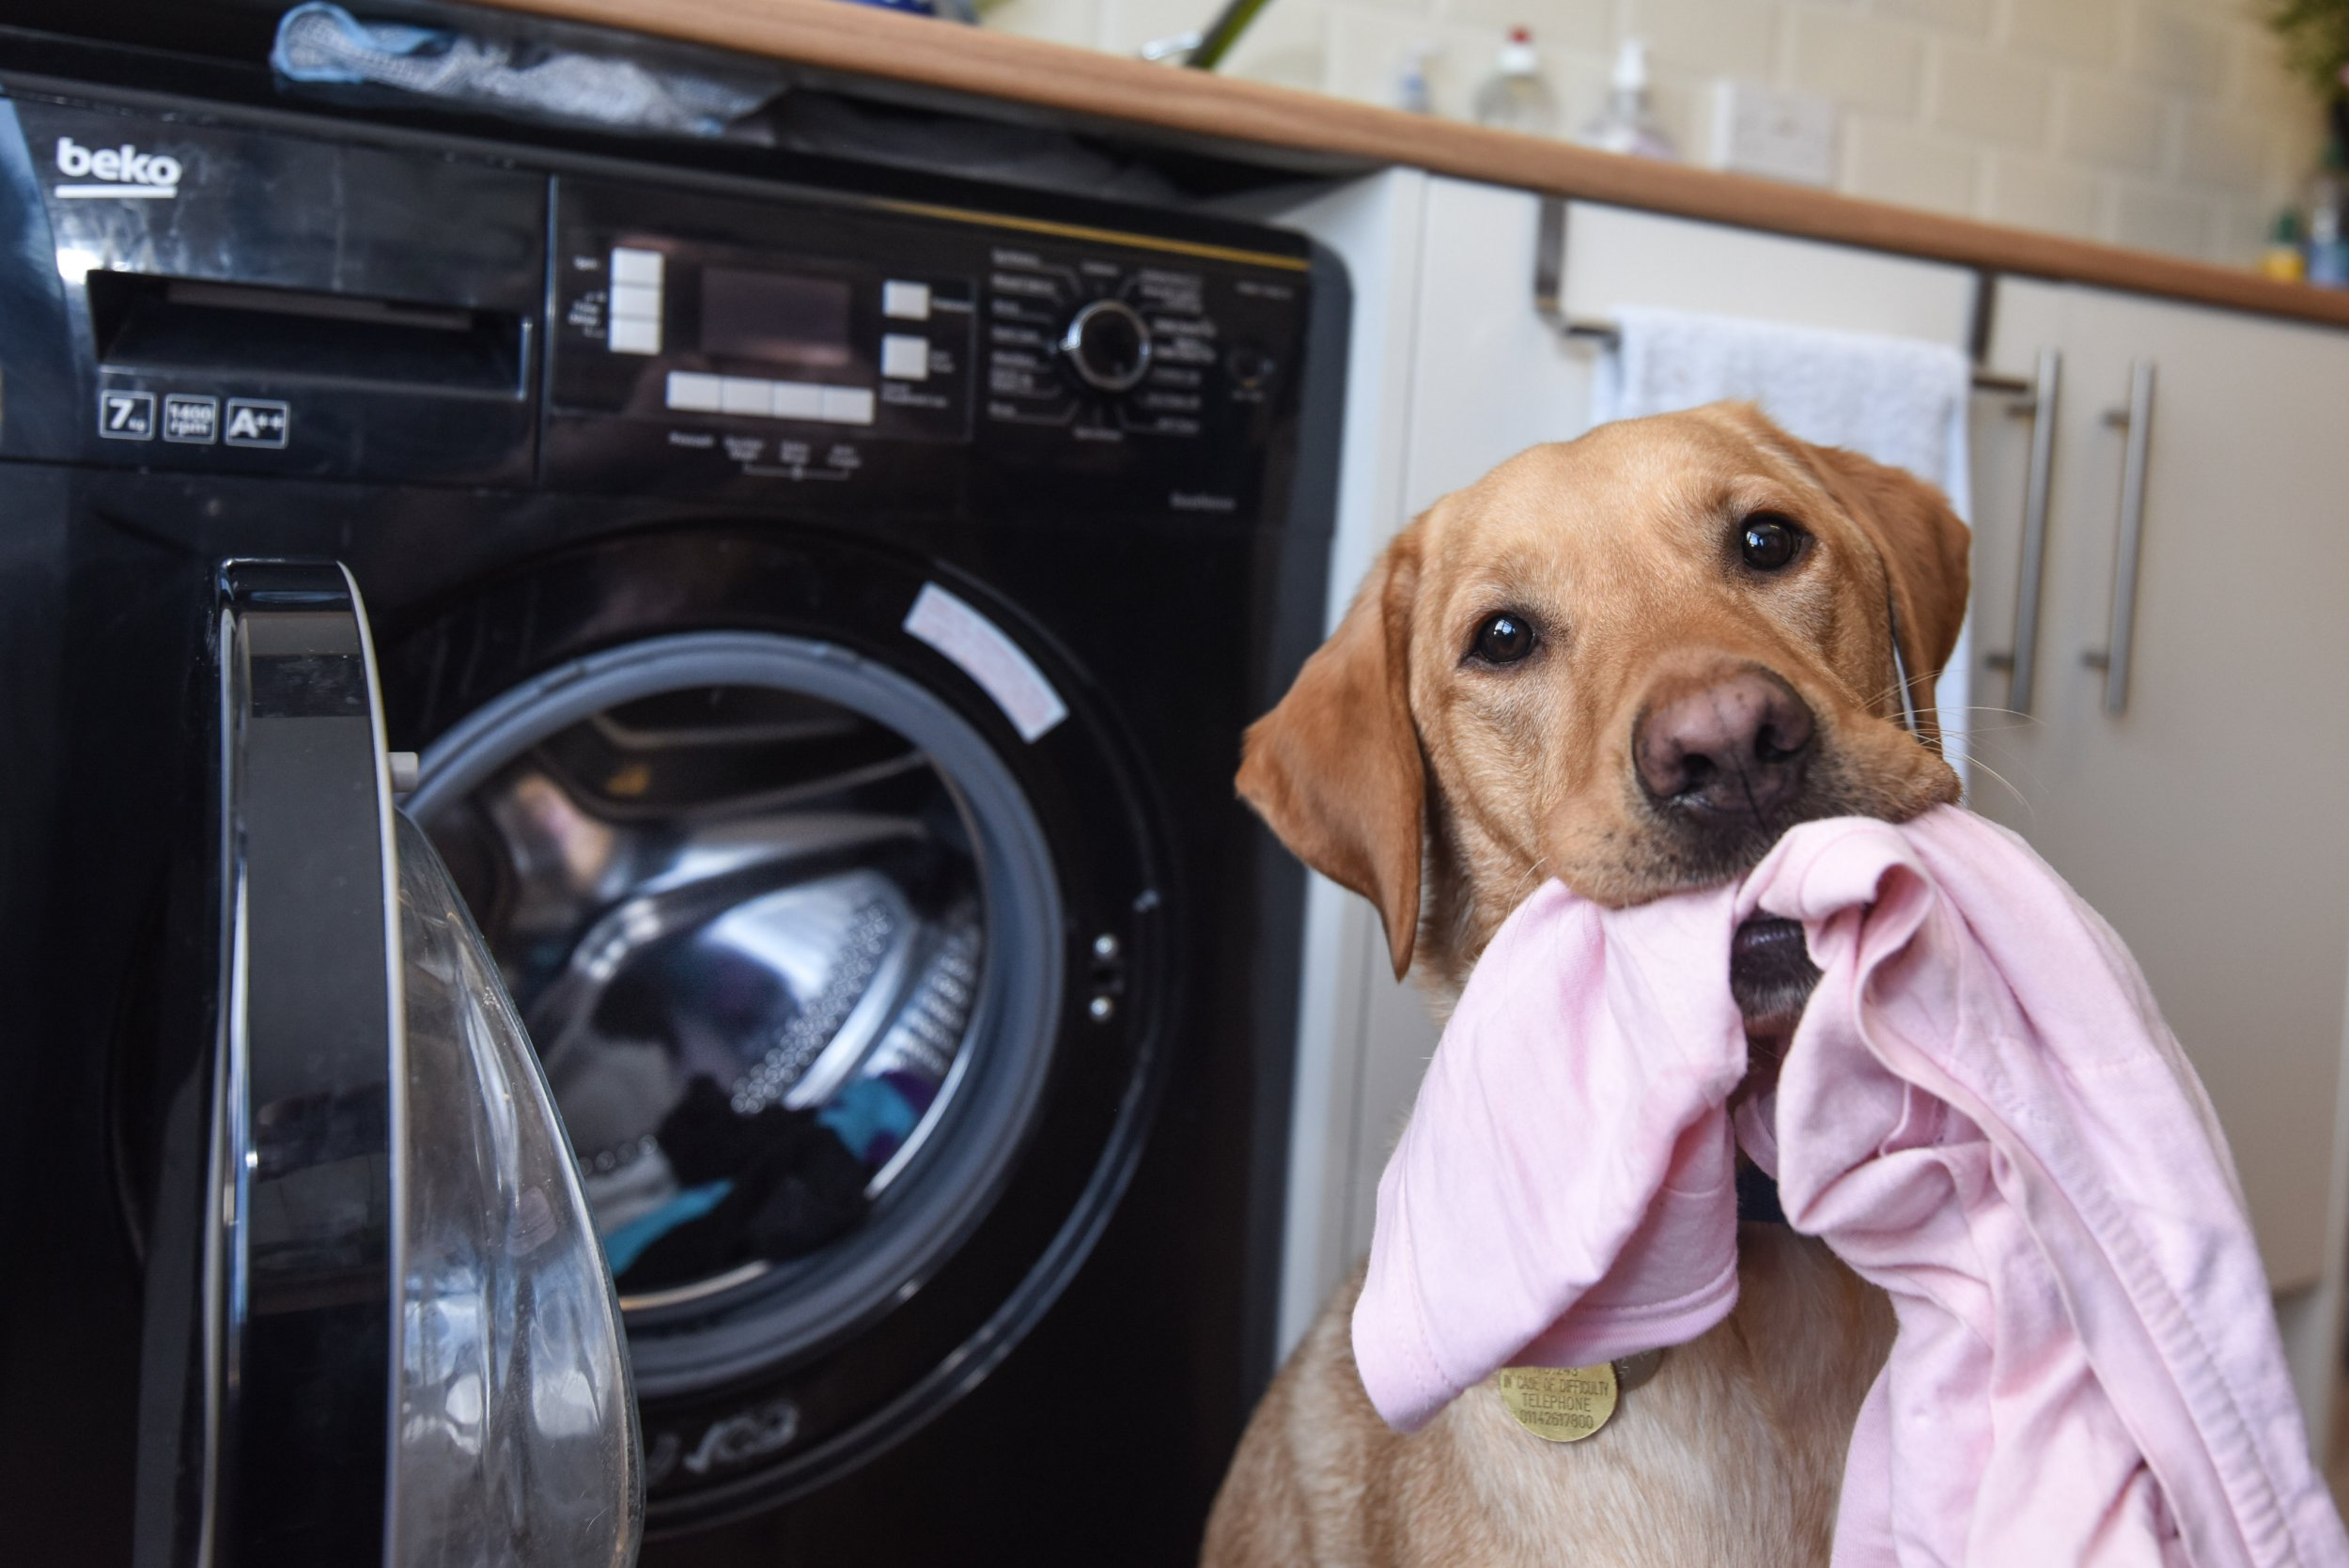 Good dog Kevin has been trained to do laundry to help out his owner